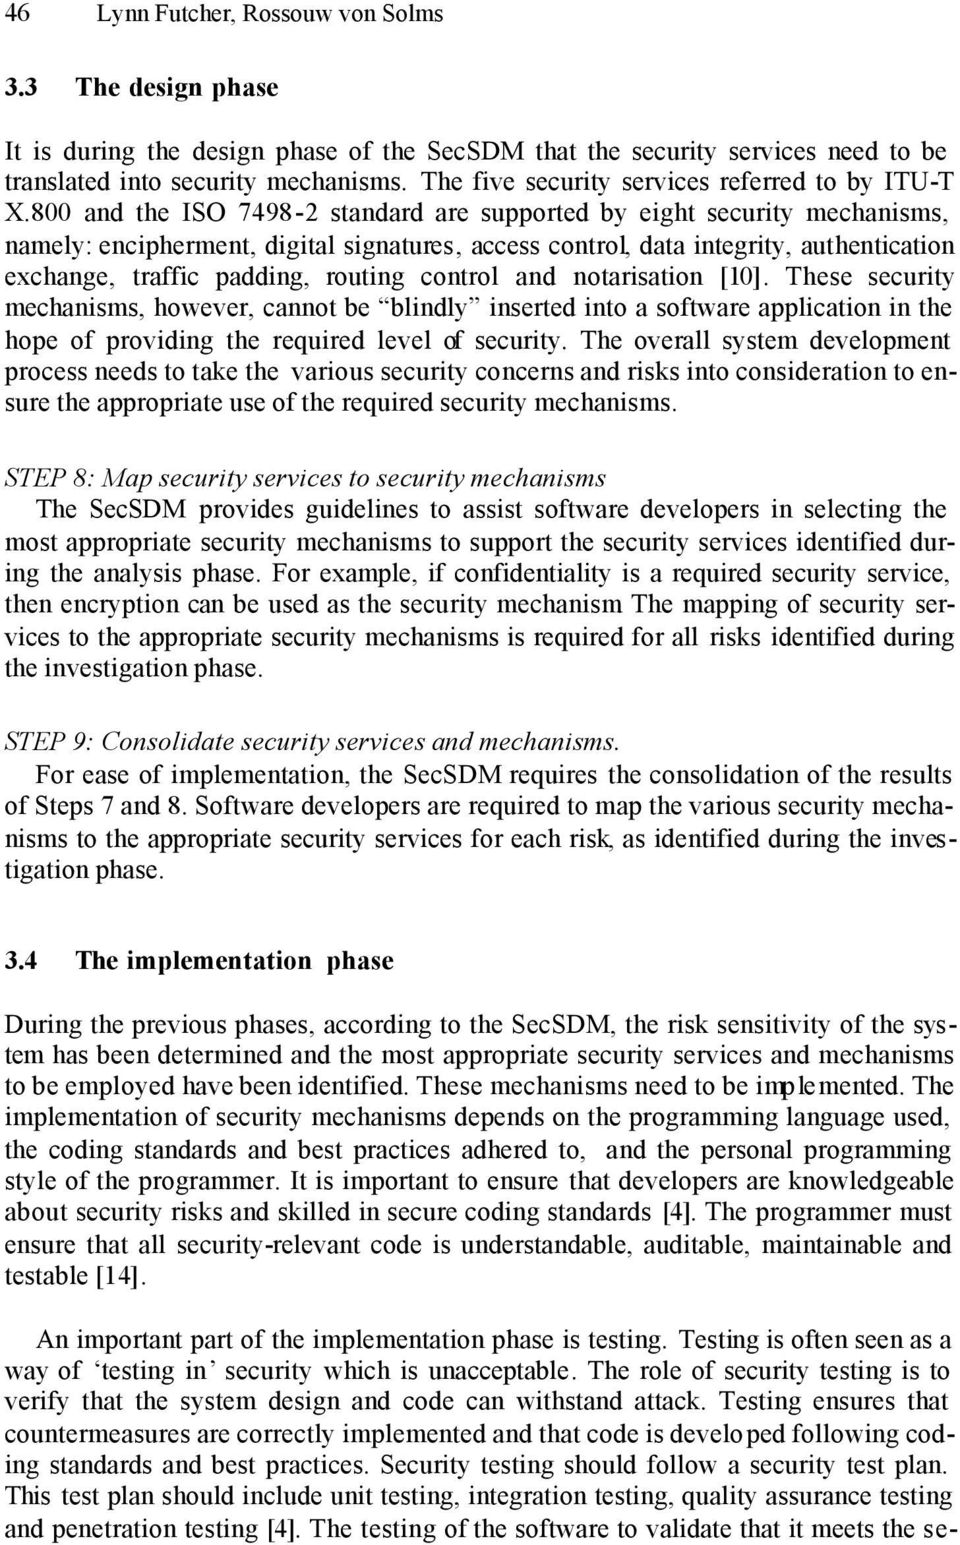 800 and the ISO 7498-2 standard are supported by eight security mechanisms, namely: encipherment, digital signatures, access control, data integrity, authentication exchange, traffic padding, routing